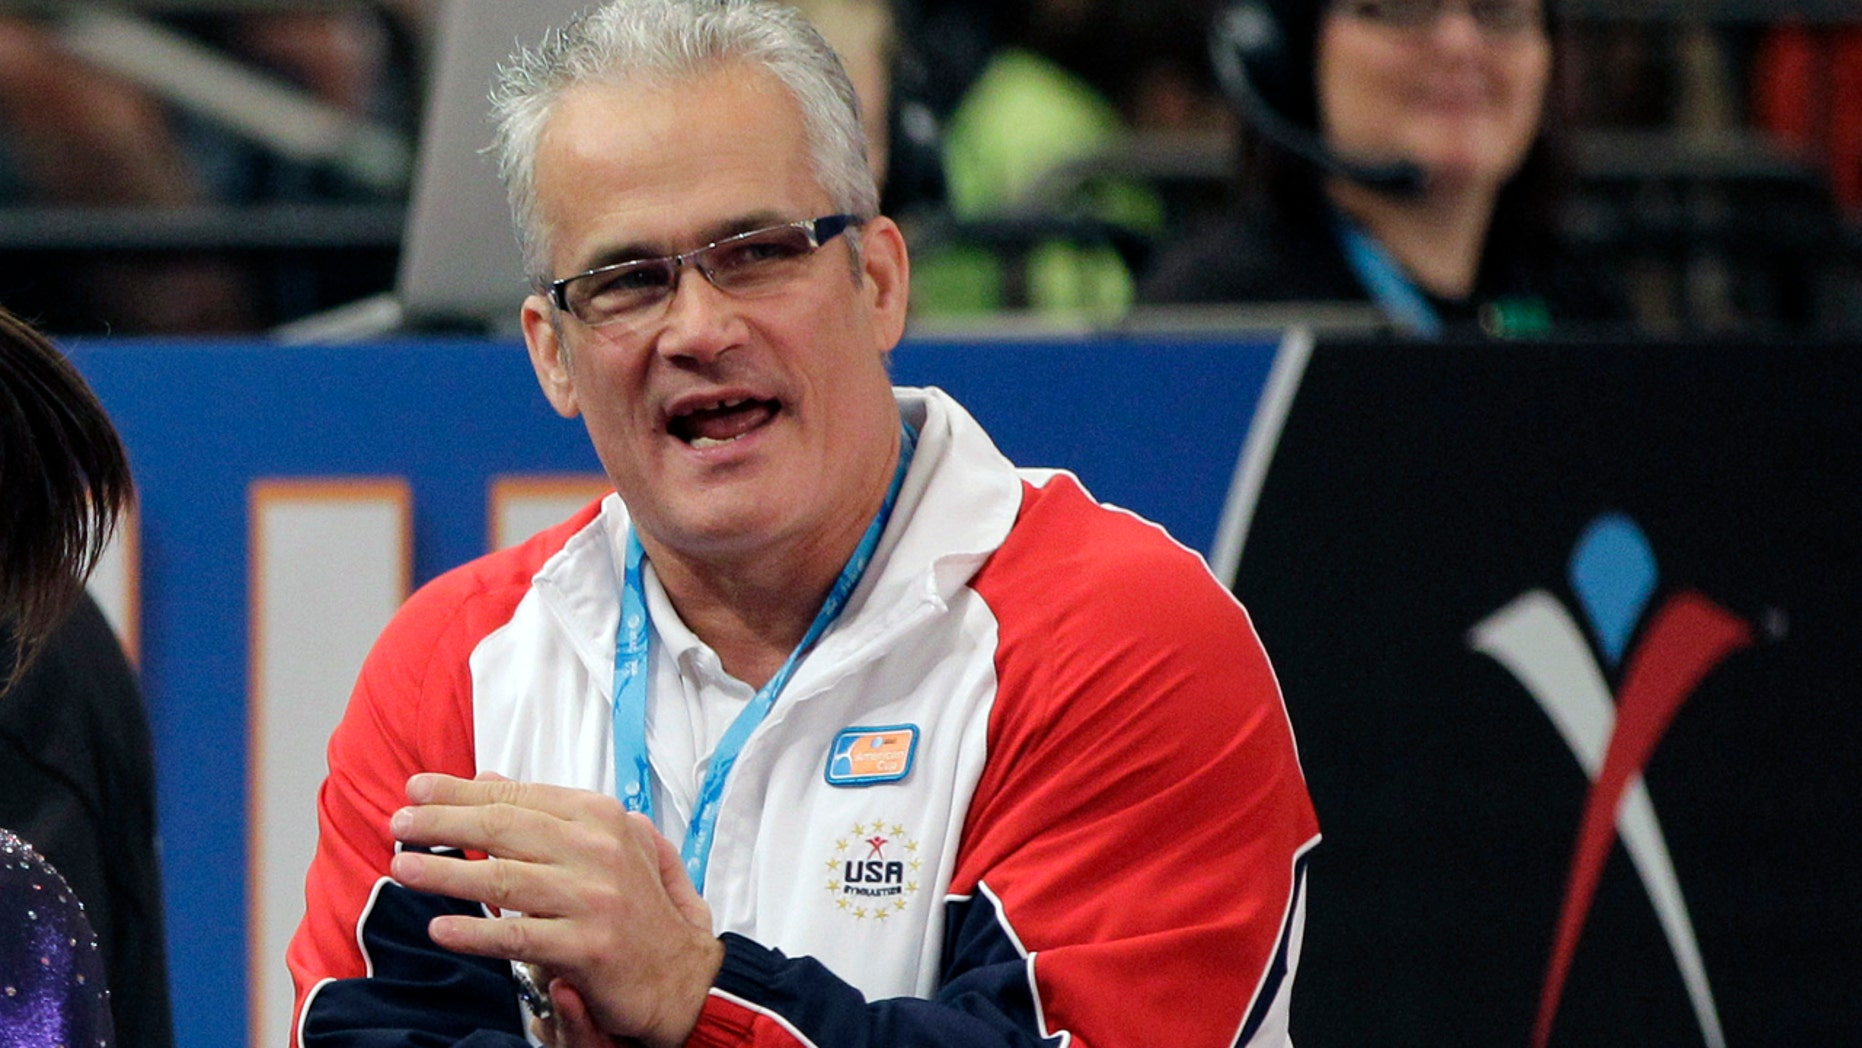 John Geddert was the head coach of the U.S. gymnastics team at the 2012 Summer Olympics in London.